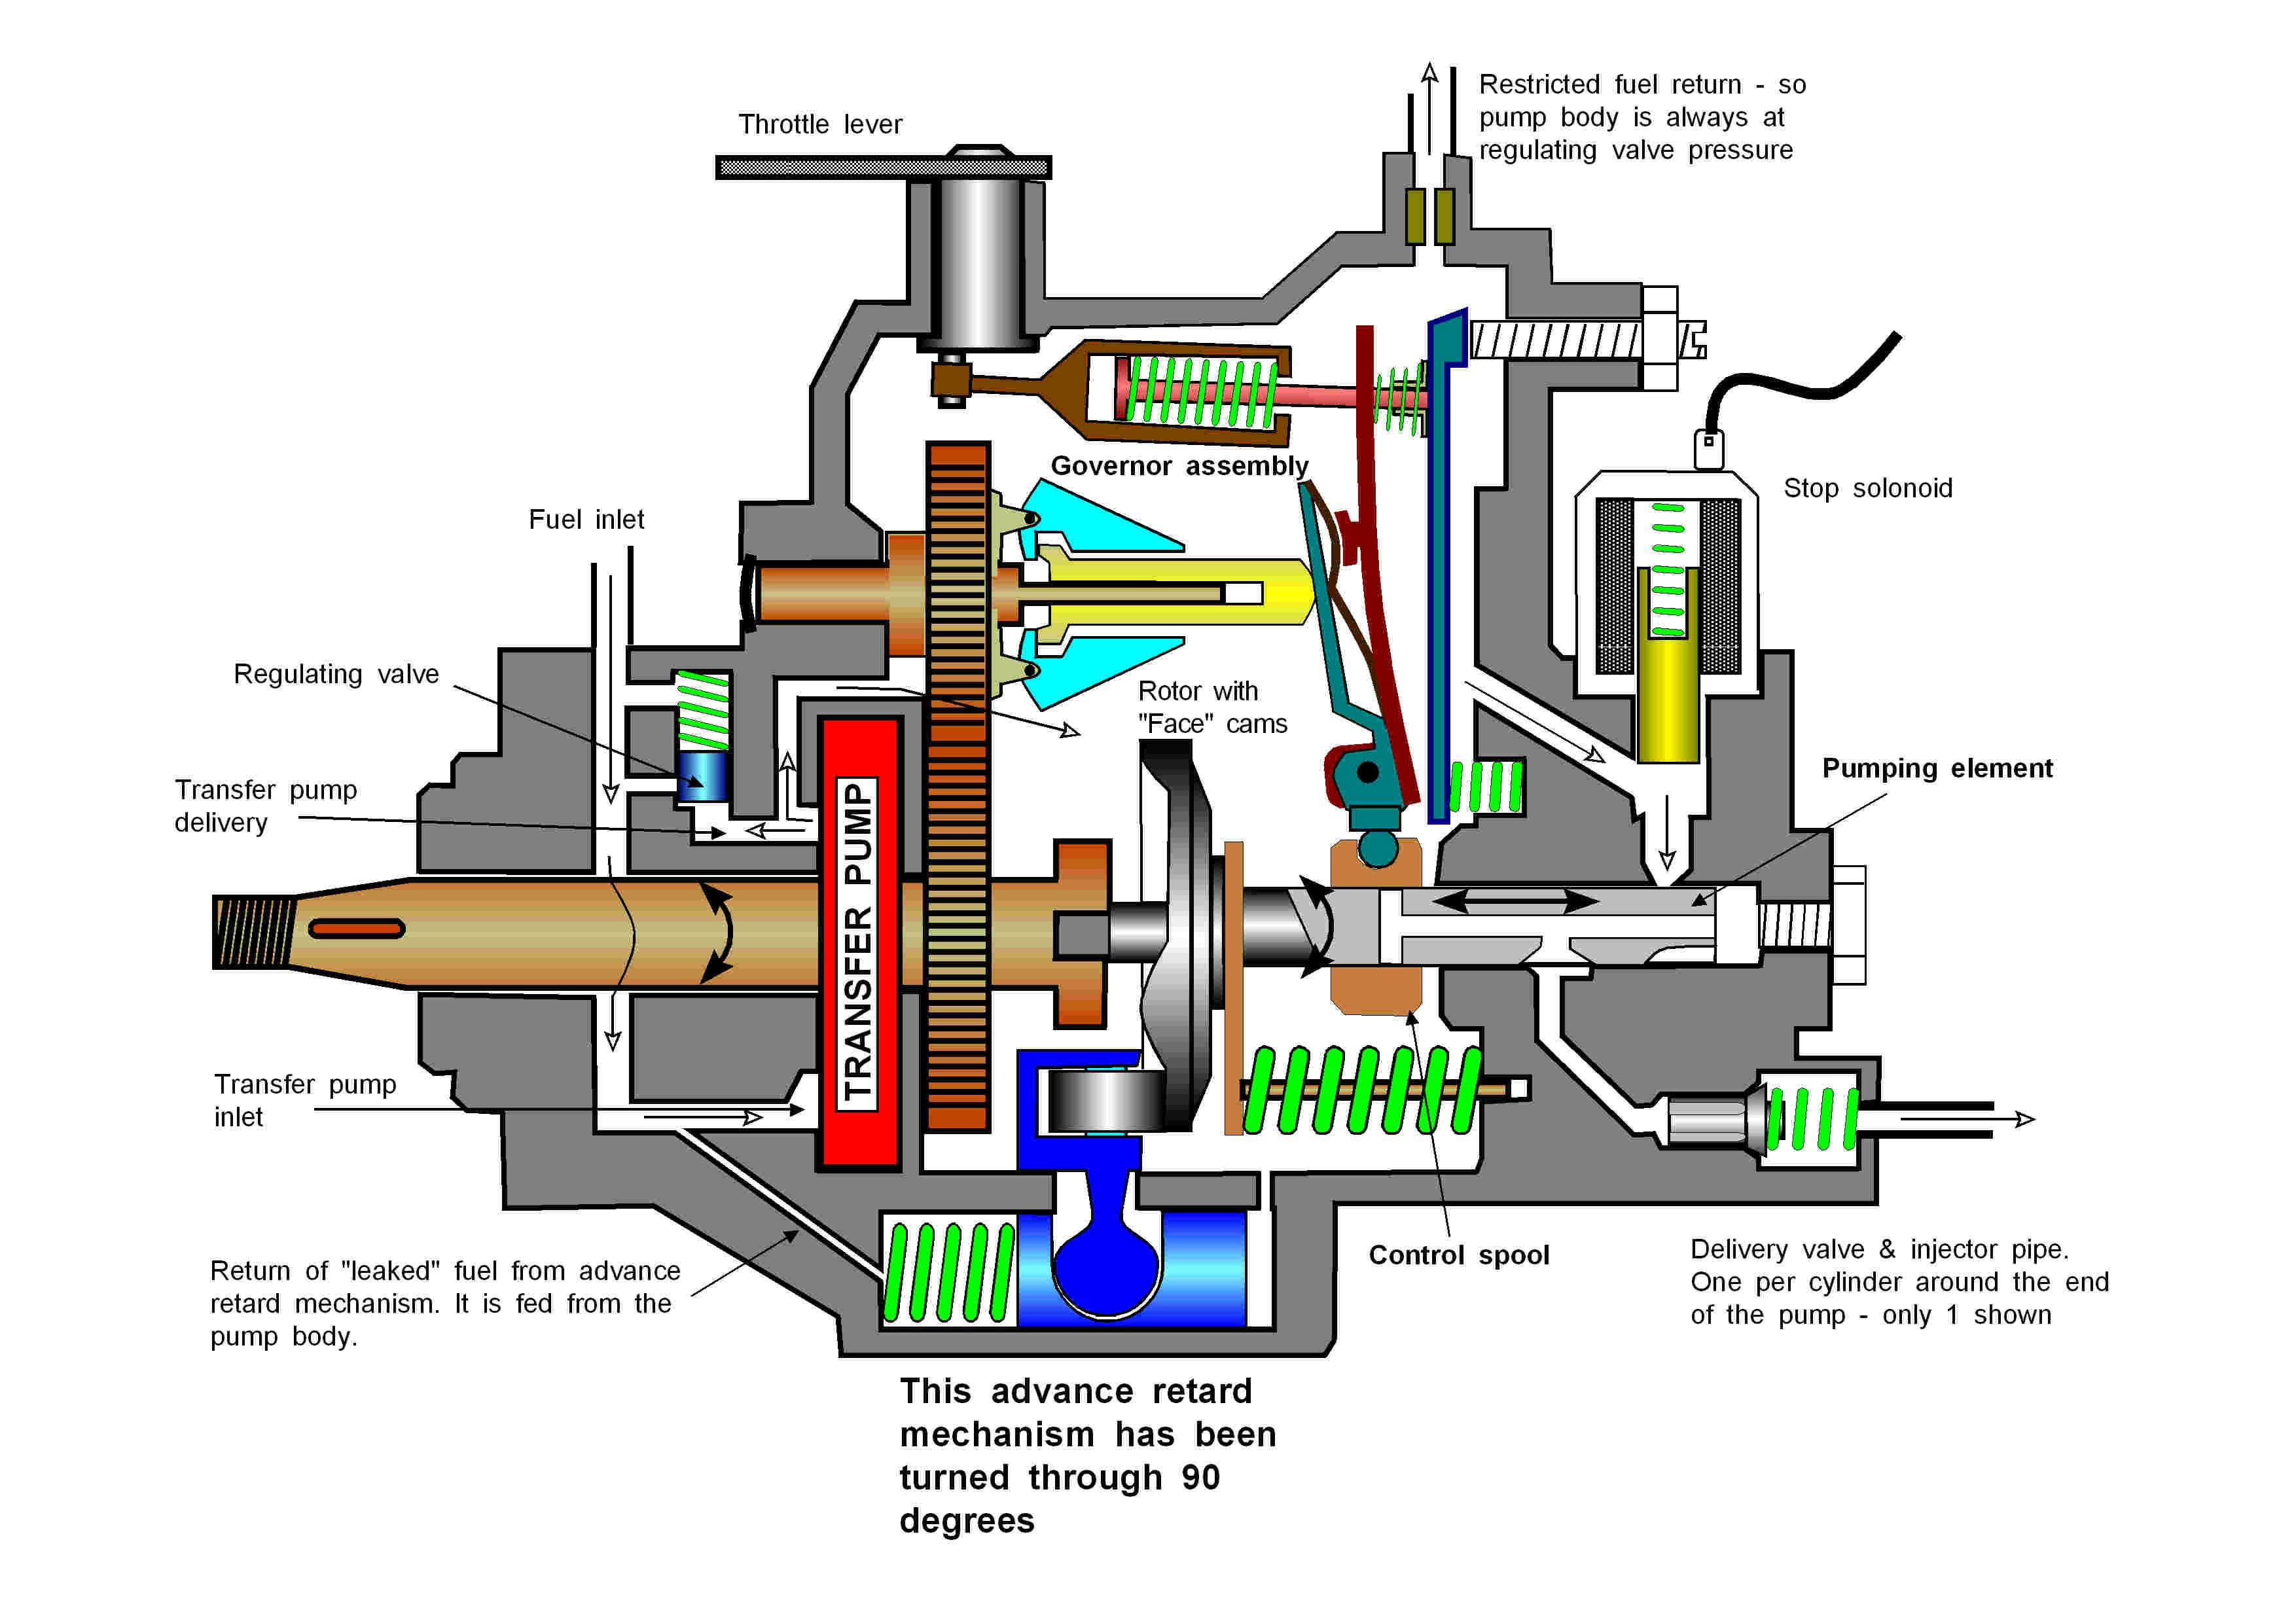 Again similar to the DPA pump except with a self-priming pump it only needs  to control the transfer pressure. Governor